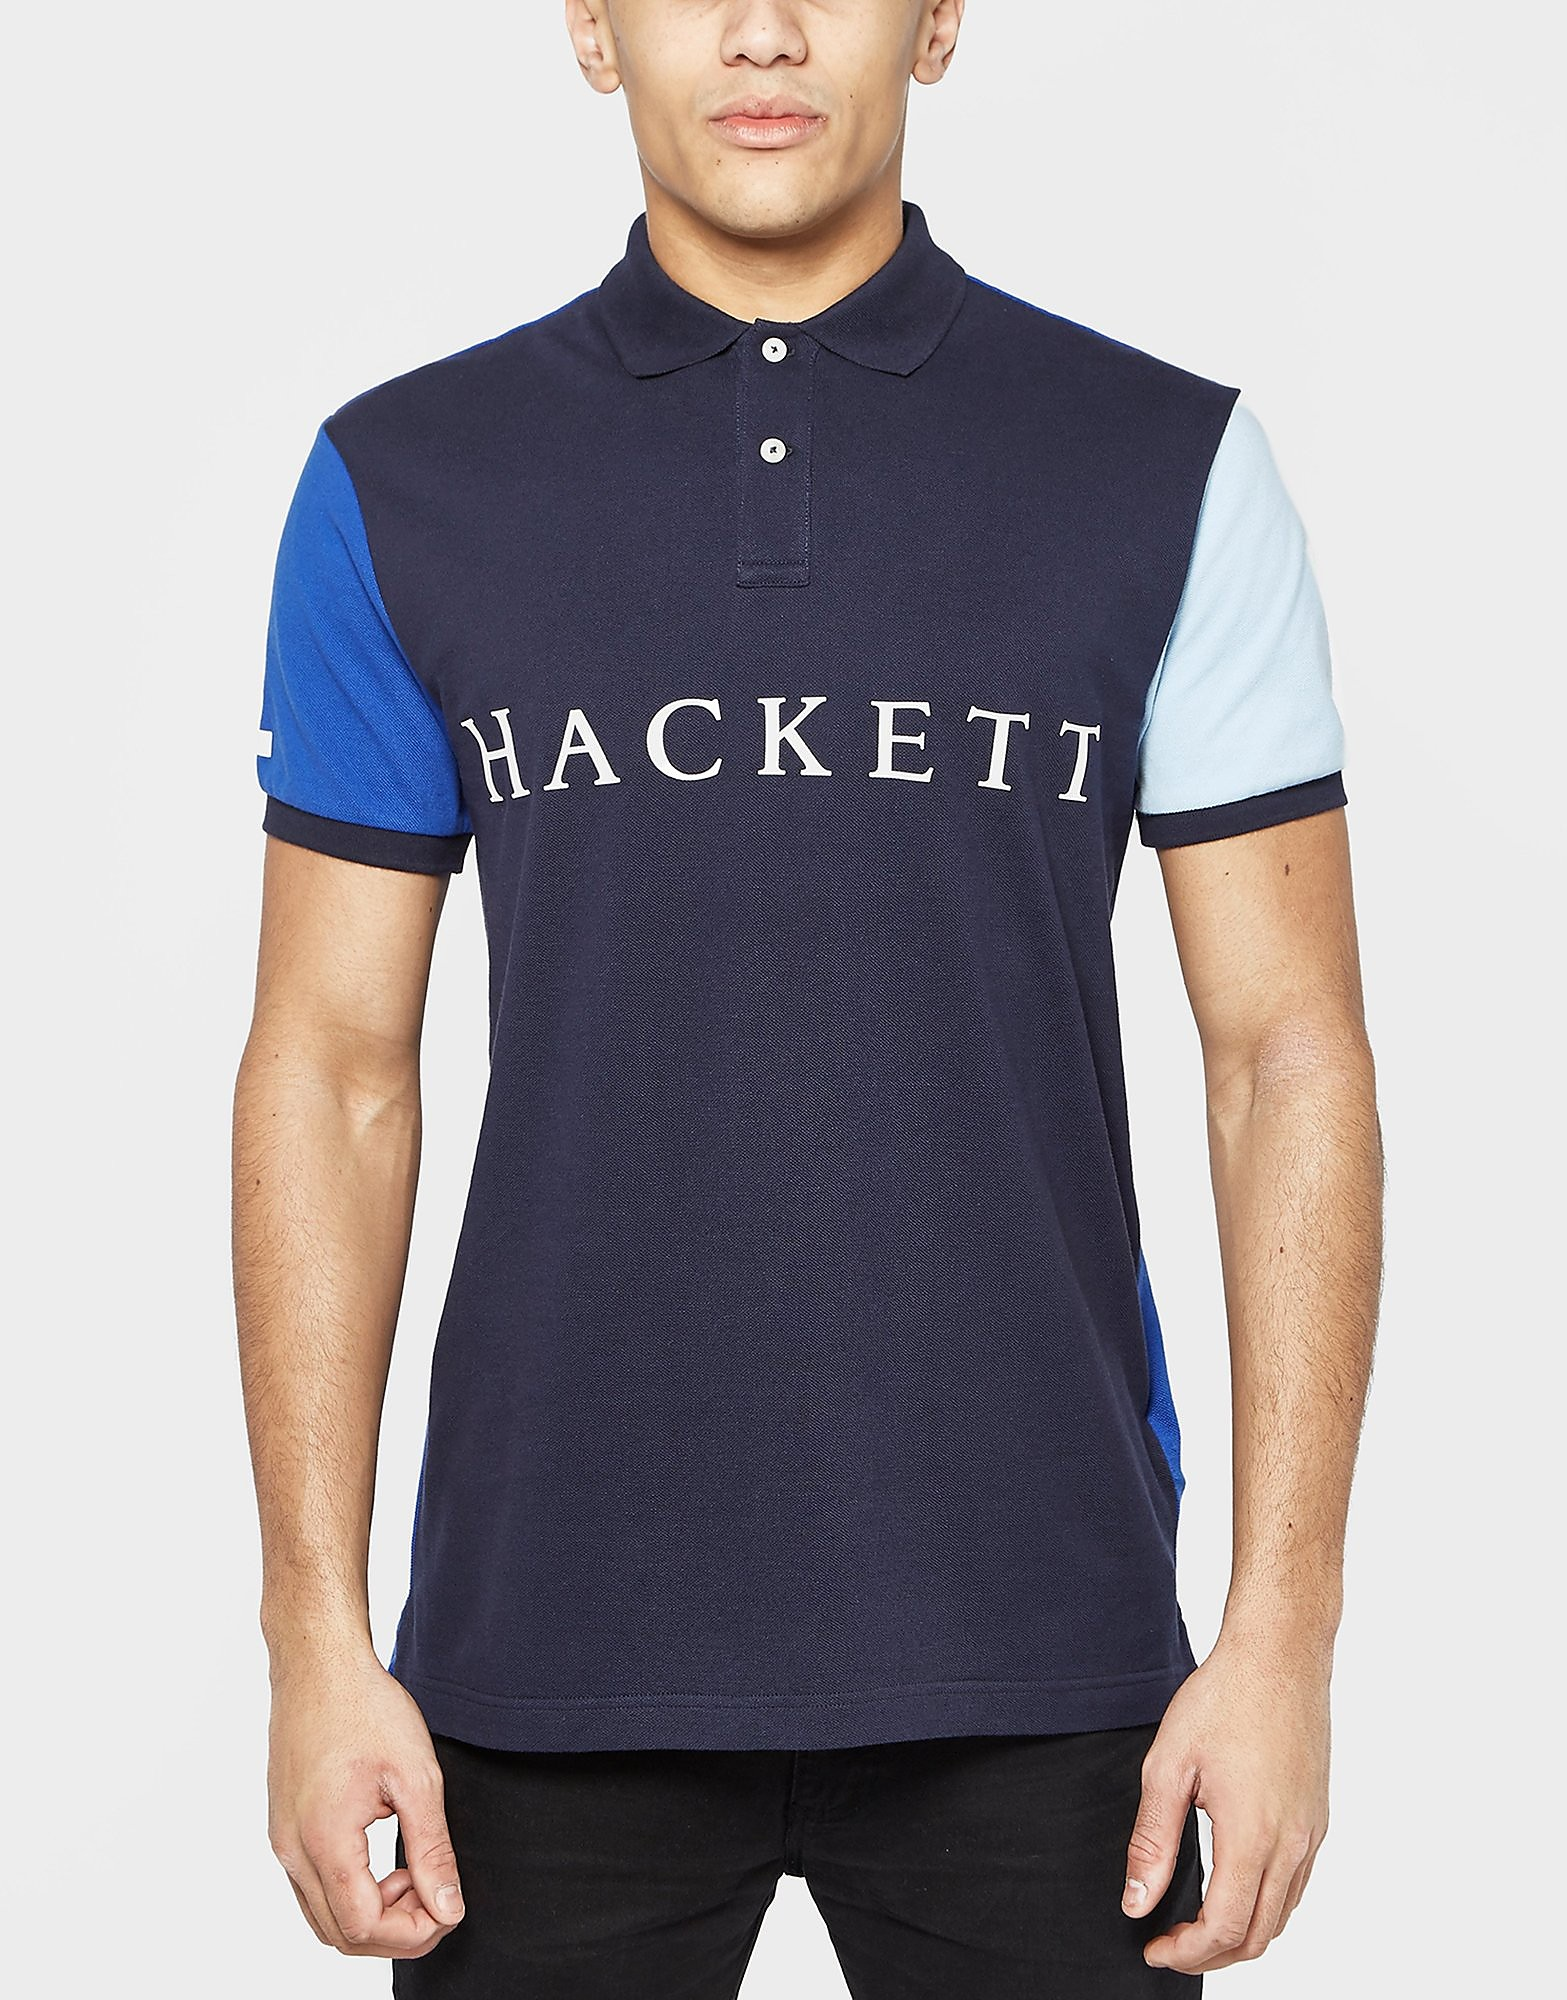 HACKETT Contrasting Sleeve Polo Shirt